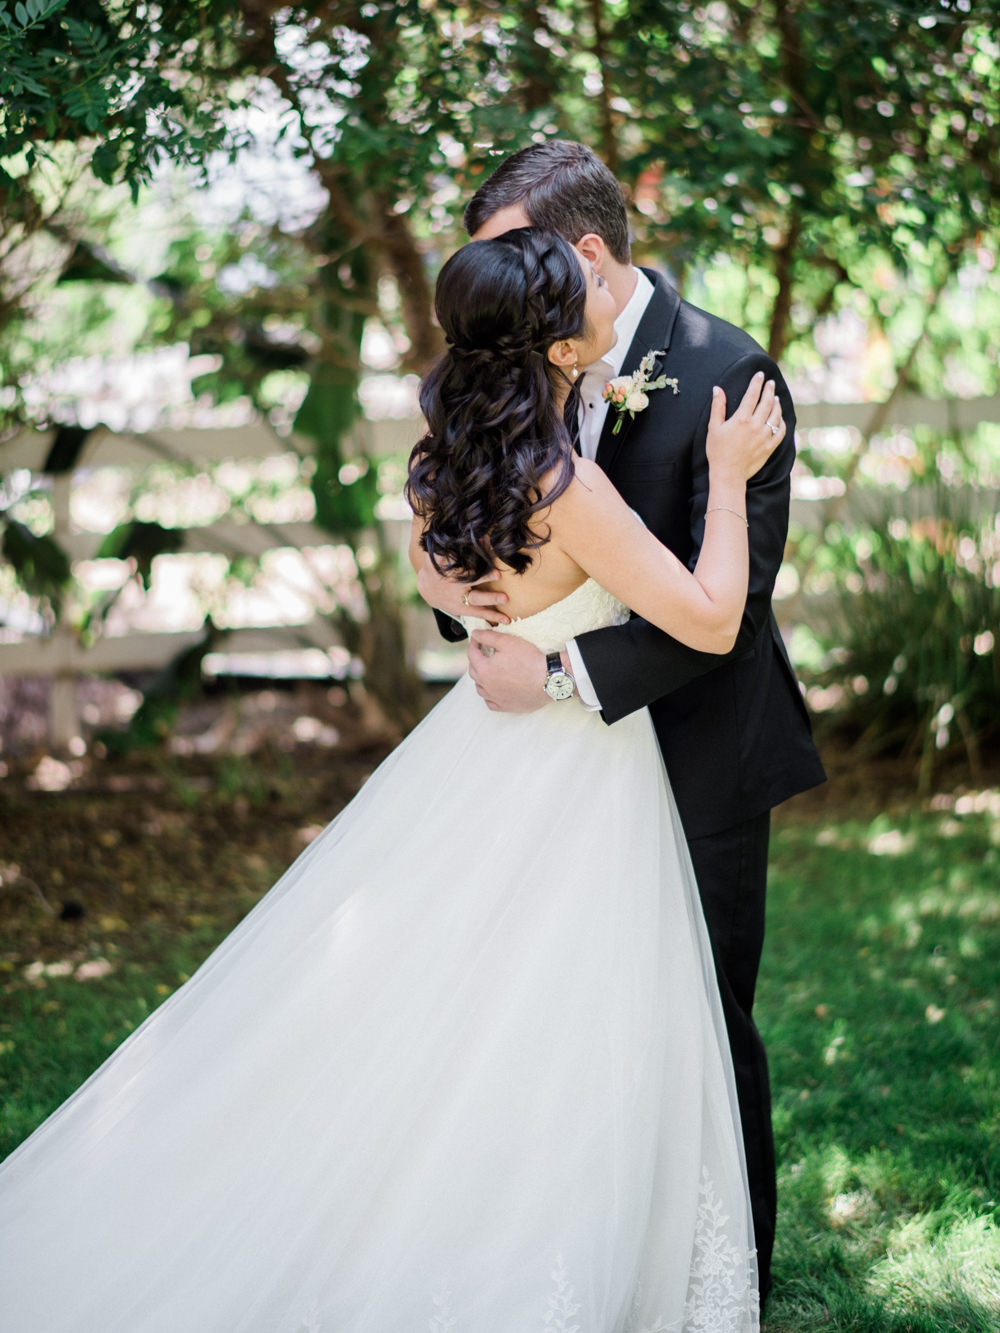 Romantic Garden Wedding in California | Style Me Pretty | Green Gables Estate | Classic Romantic bride wedding gown | First Look | Southern California Film photographer | Whiskers and Willow Photography